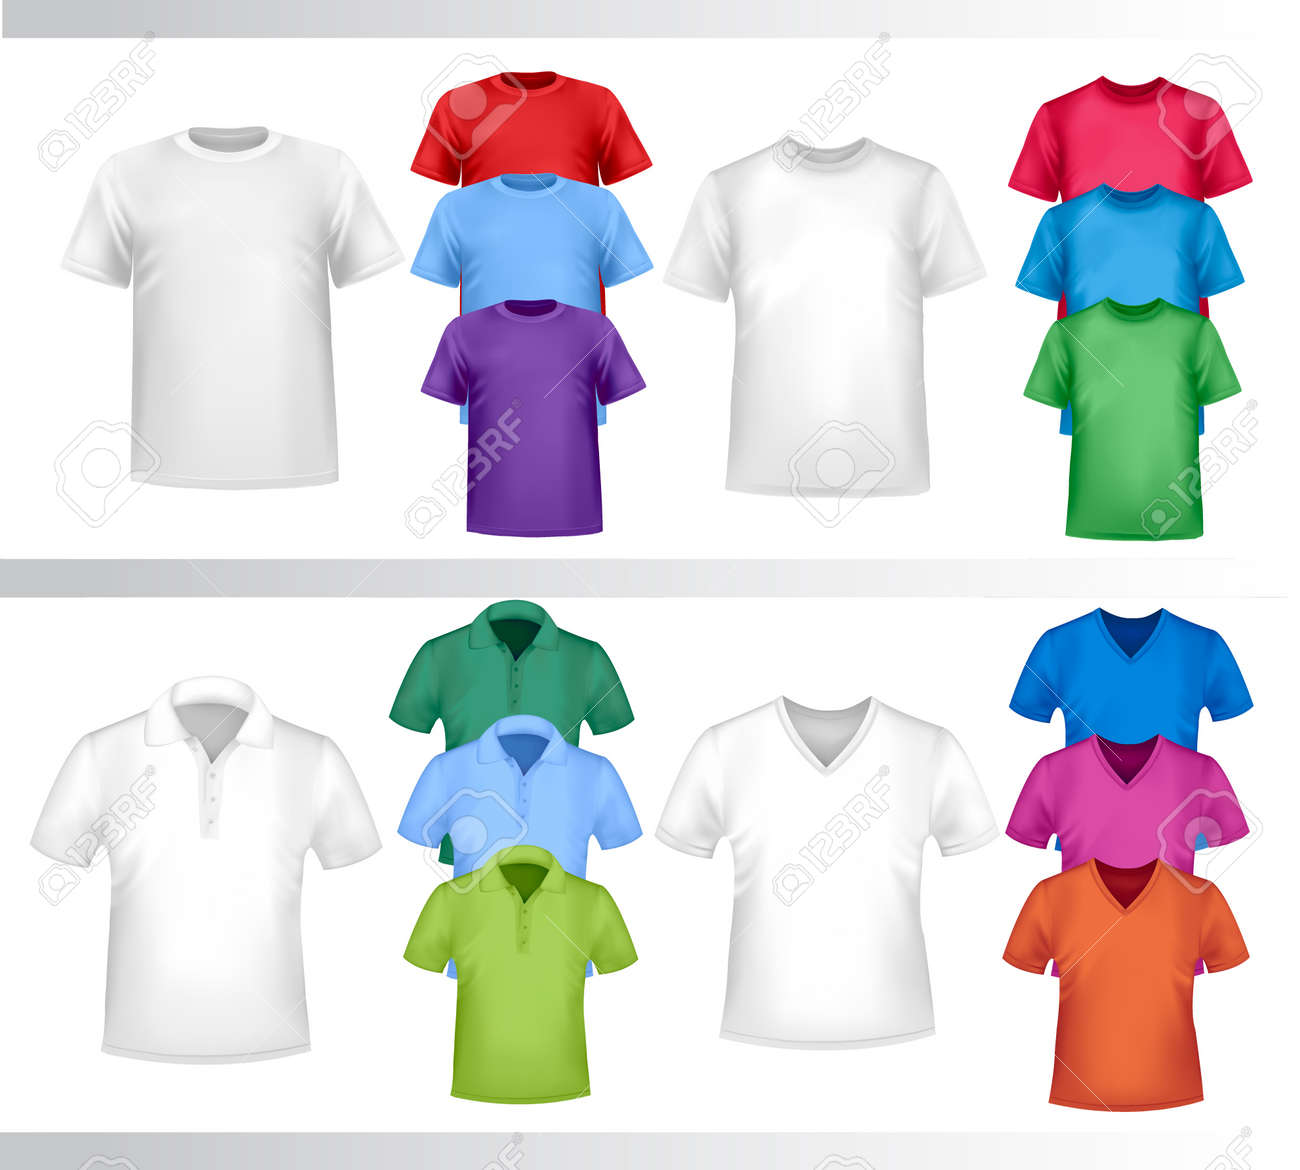 Design set of shirts Stock Vector - 8709077